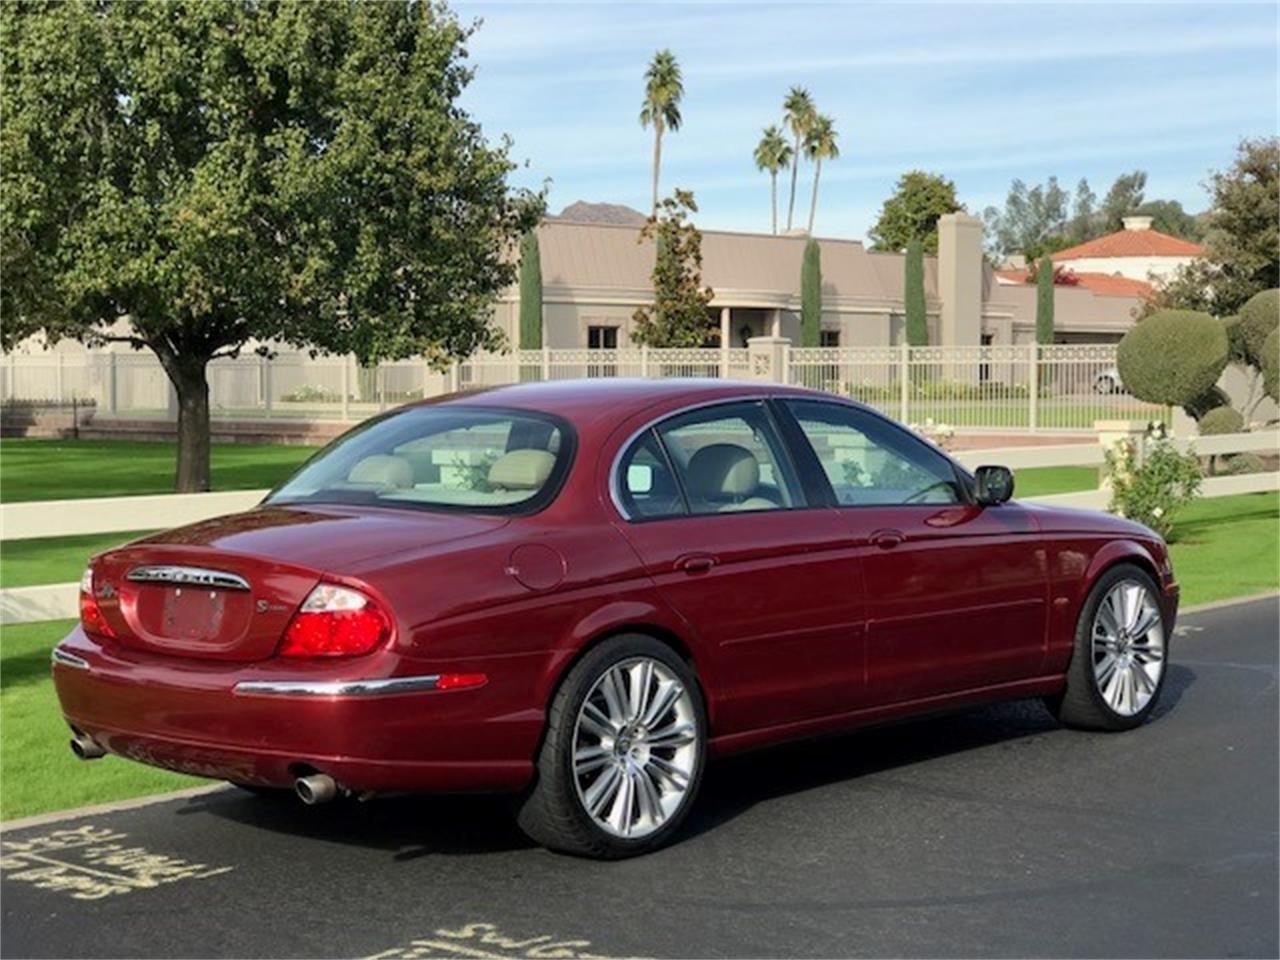 Large Picture of '00 Jaguar S-Type located in Arizona Auction Vehicle - MOE1